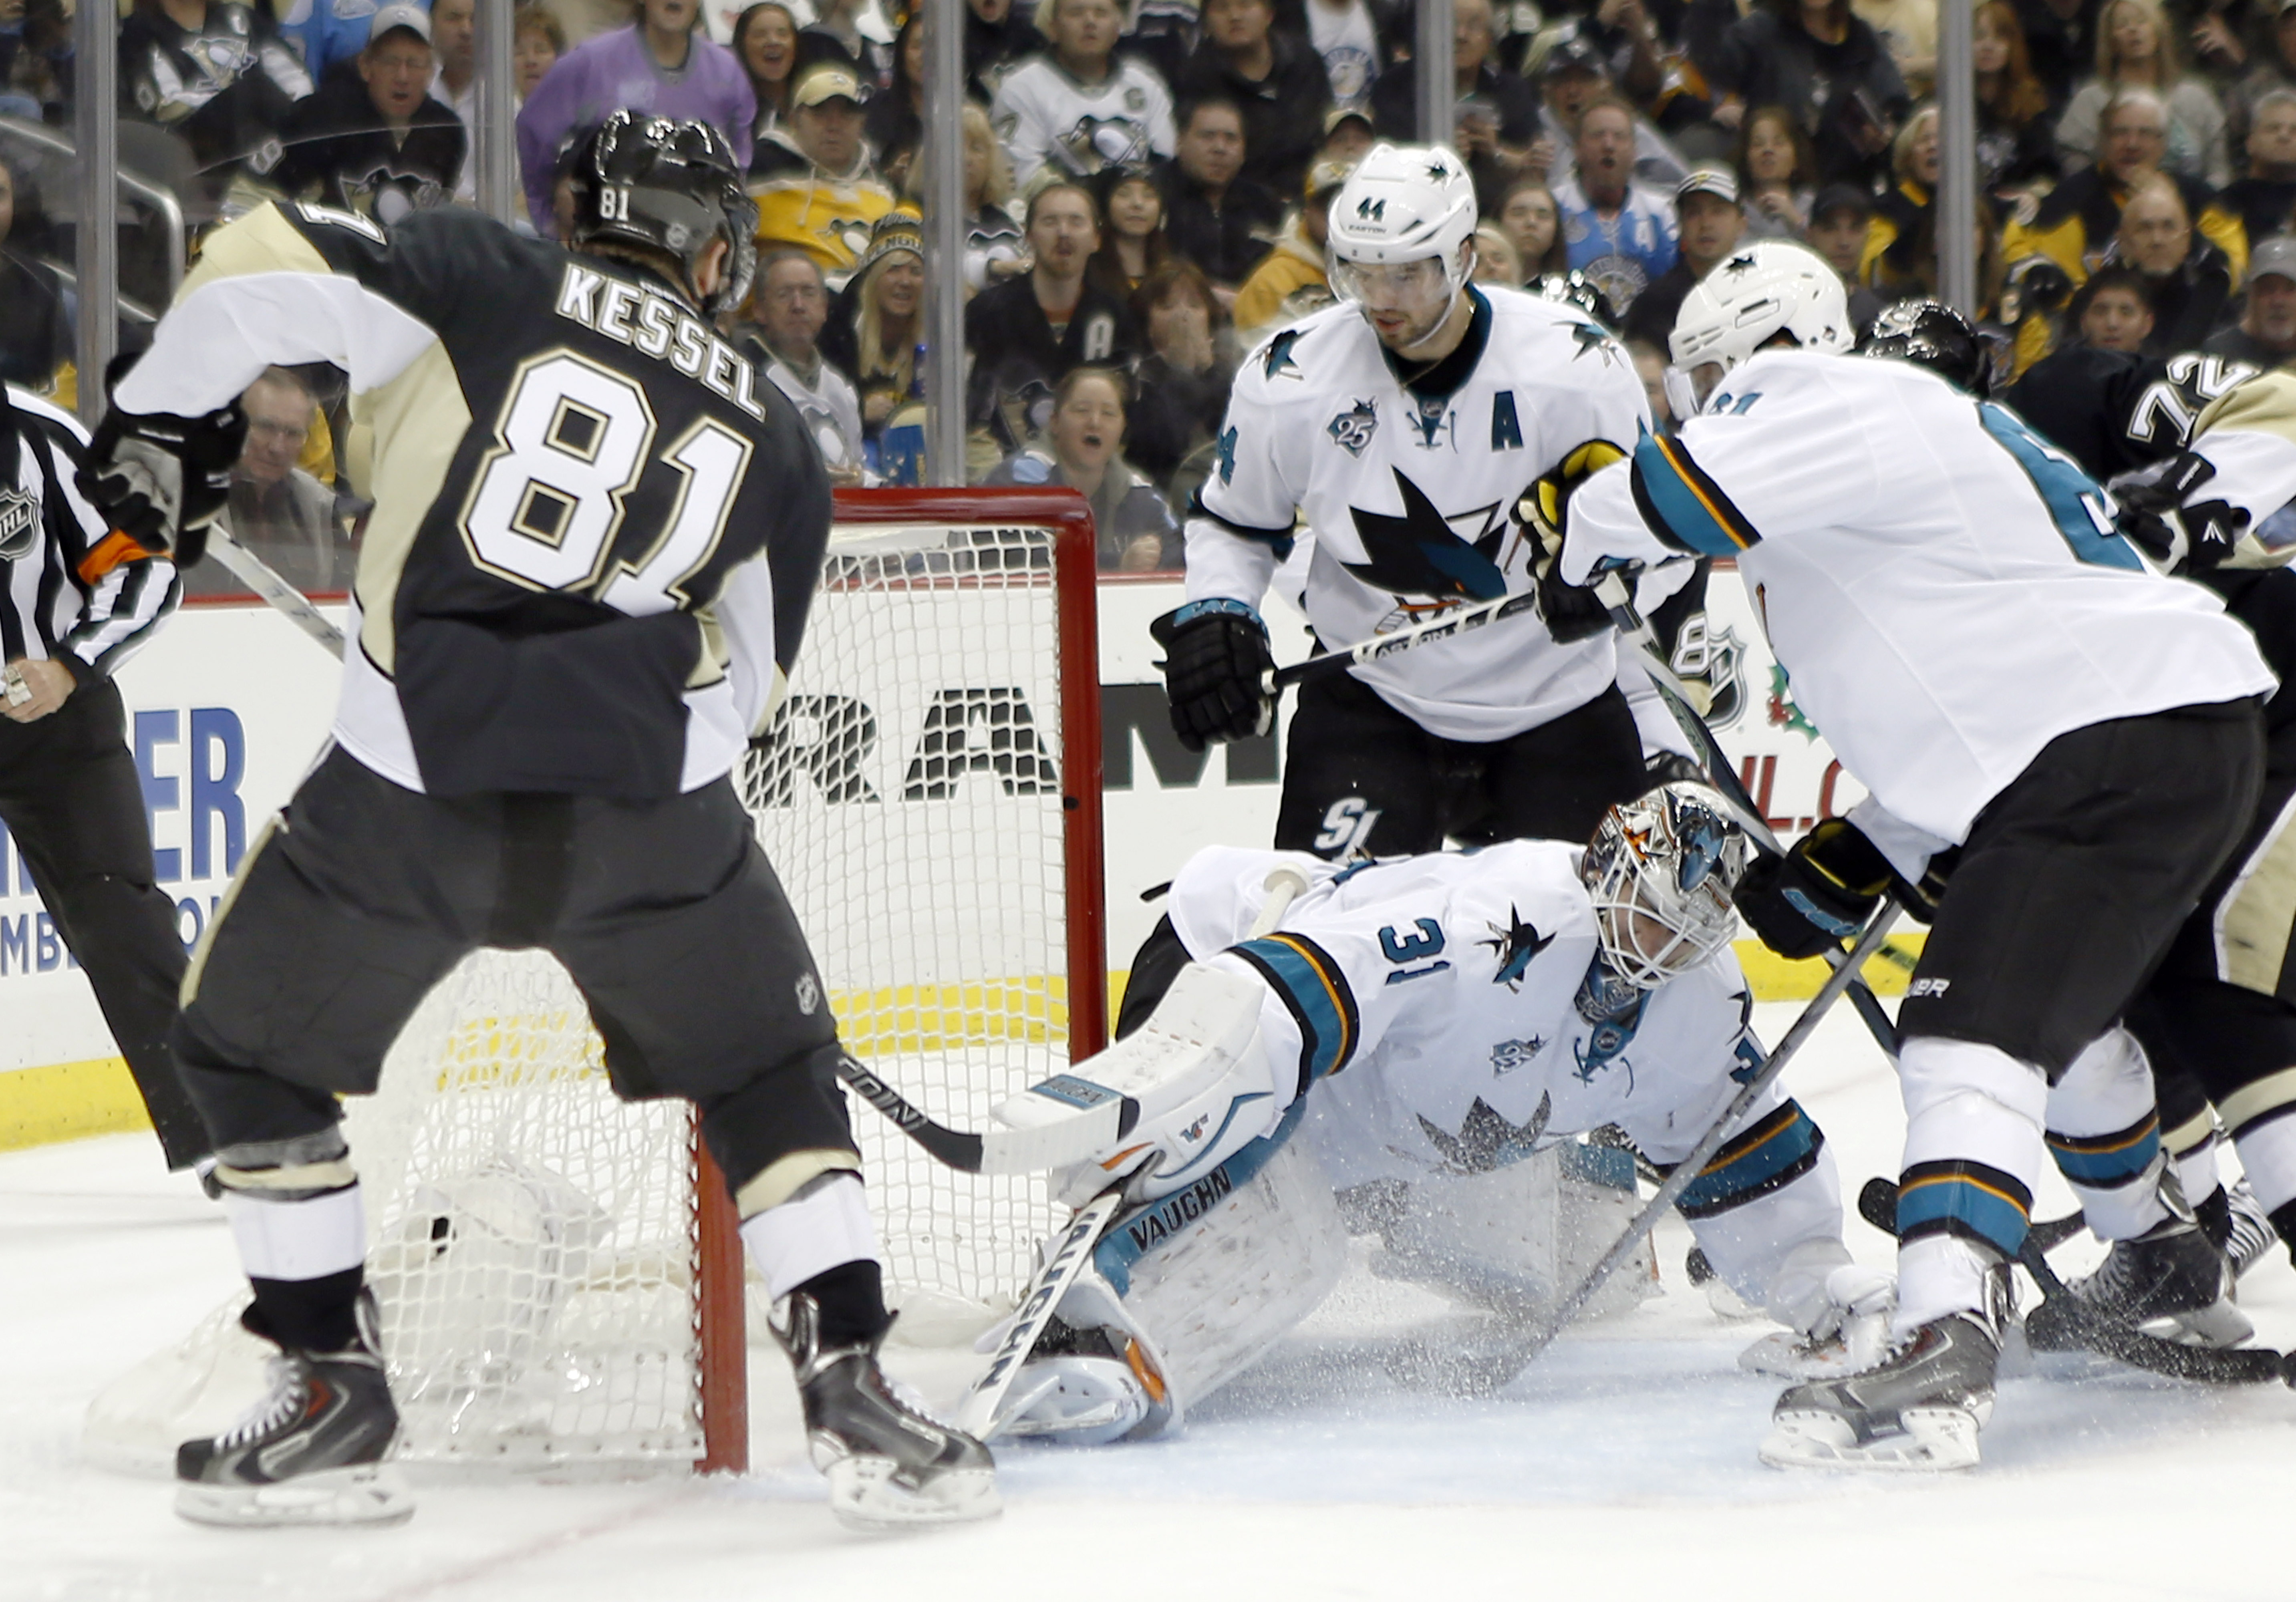 Pittsburgh Penguins' Phil Kessel (81) scores a goal over San Jose Sharks goalie Martin Jones (31) as Marc-Edouard Vlasic (44) and Justin Braun, right, defend in the second period of an NHL hockey game, Saturday, Nov. 21, 2015, in Pittsburgh. (AP Photo/Kei